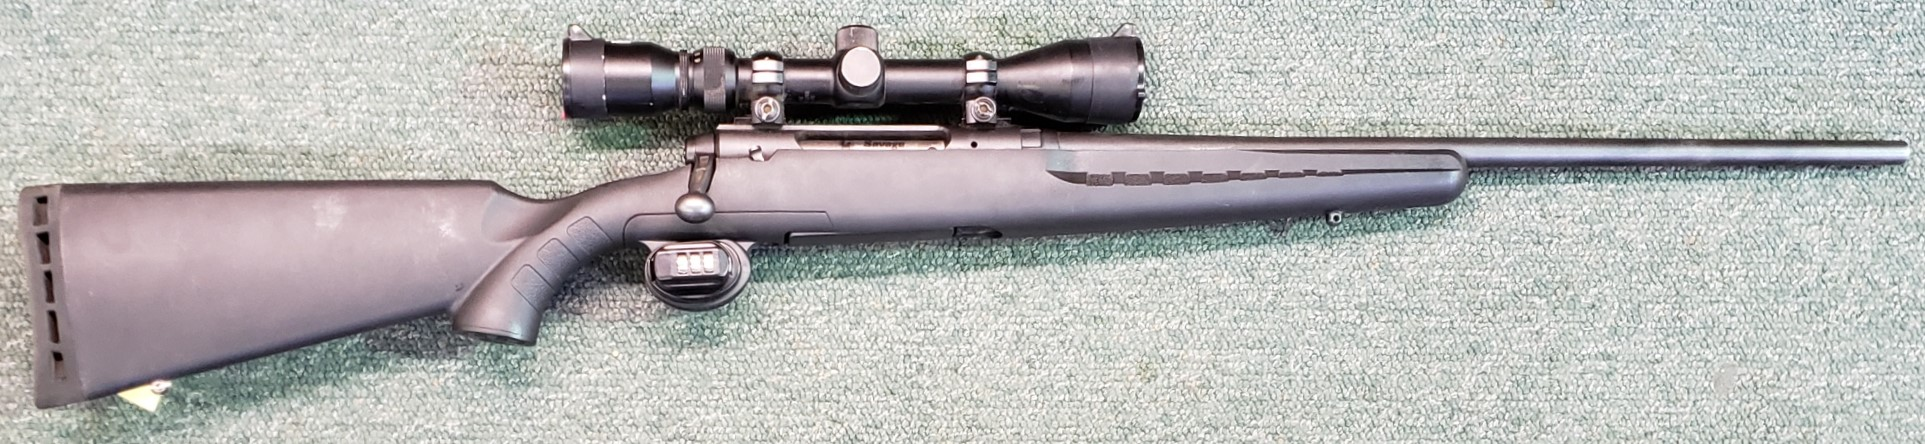 Savage Axis 30-06 with Scope (used)